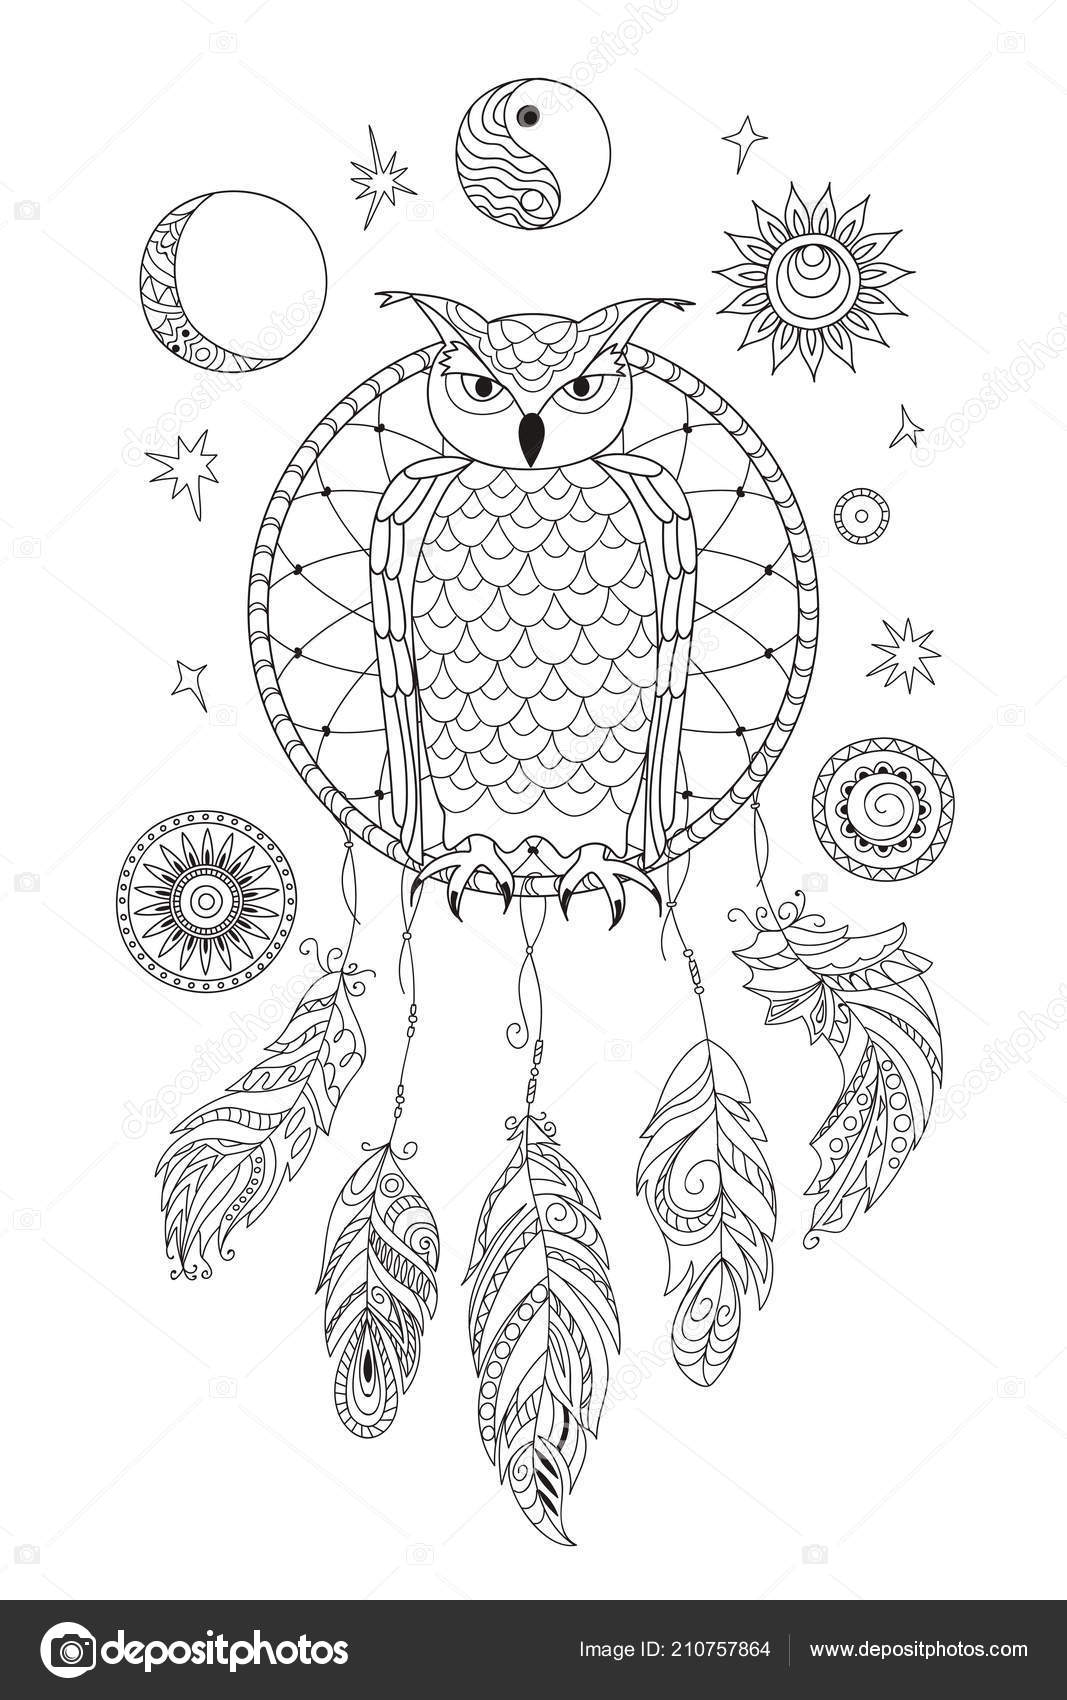 Coloring Page Symbol Moon Sun Jin Yang Patterned Owl Feathers